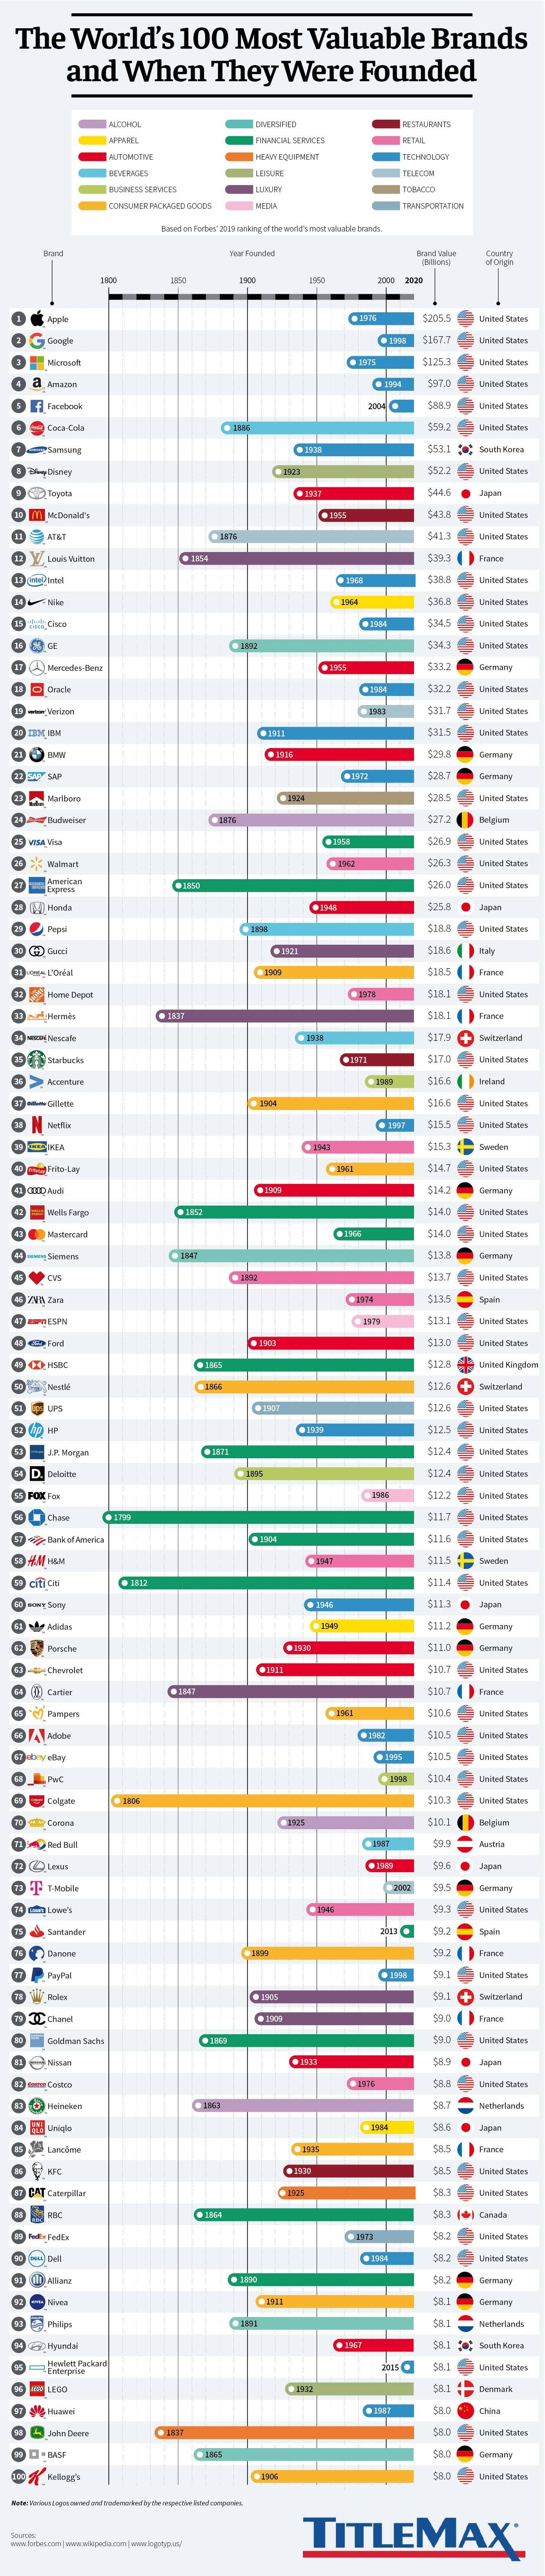 The World's 100 Most Valuable Brands & When They Were Founded #infographic